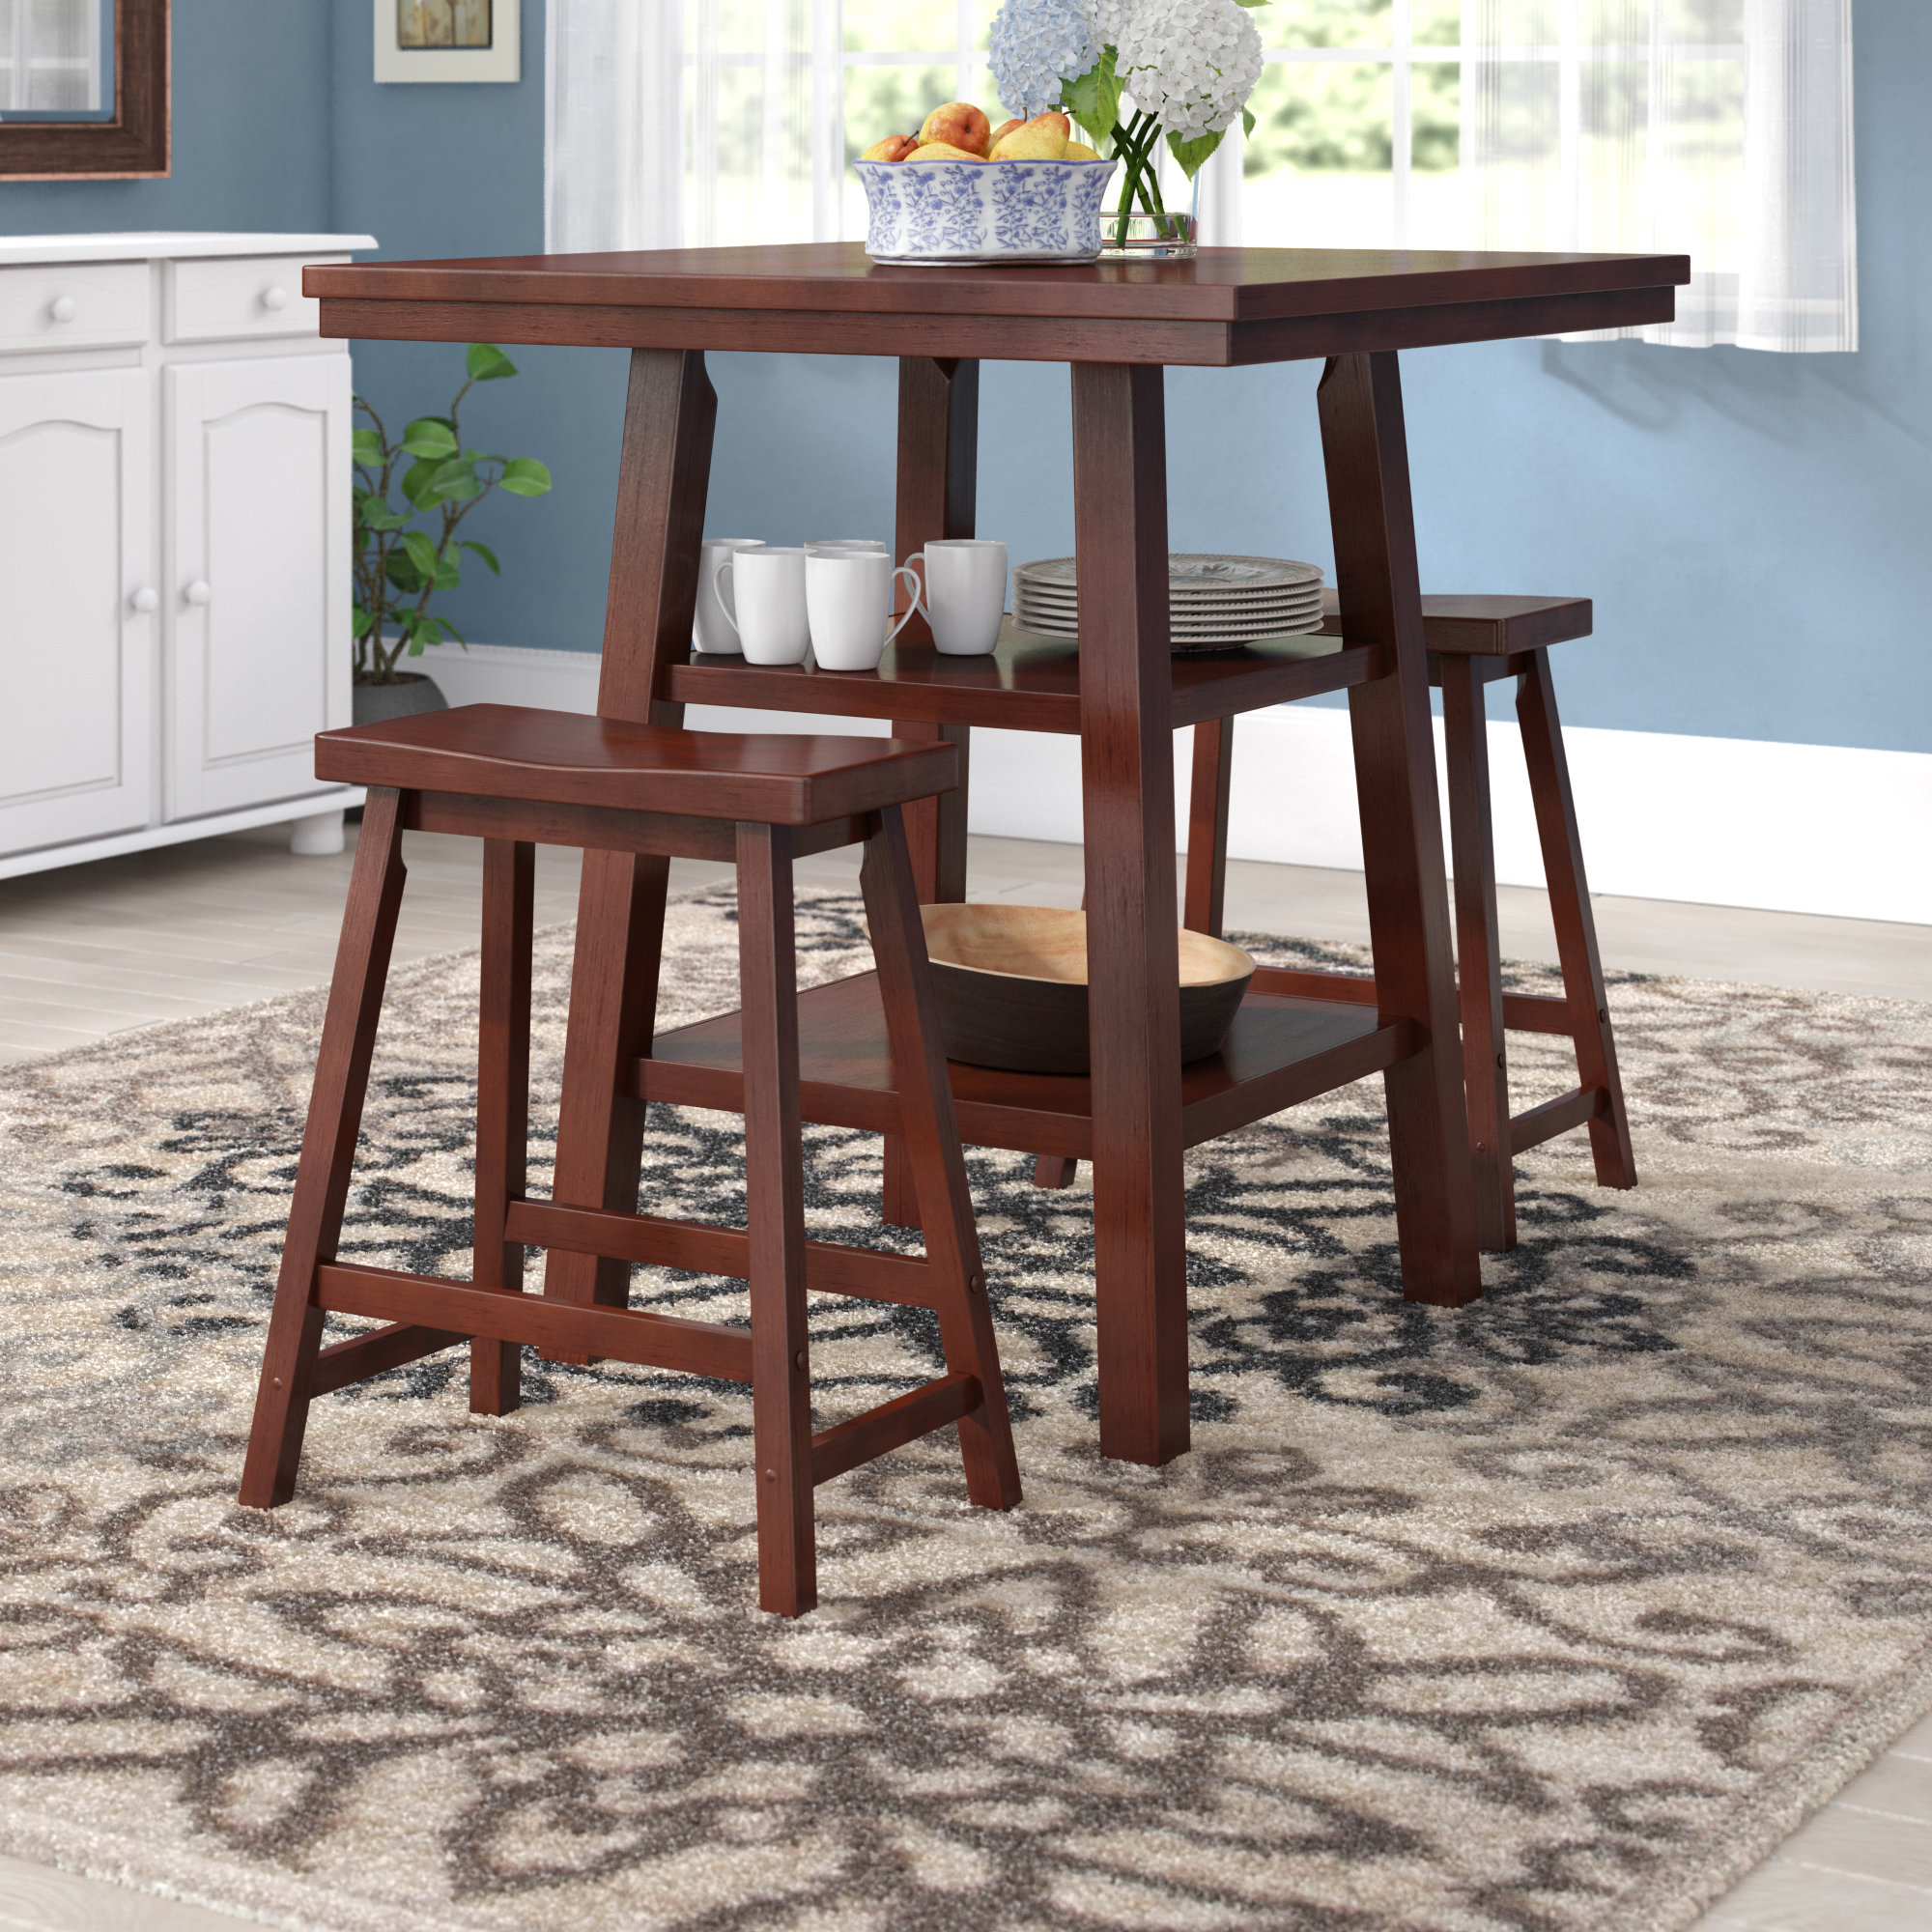 Lonon 3 Piece Dining Sets With Best And Newest Pratt Street 3 Piece Dining Set (Gallery 7 of 20)